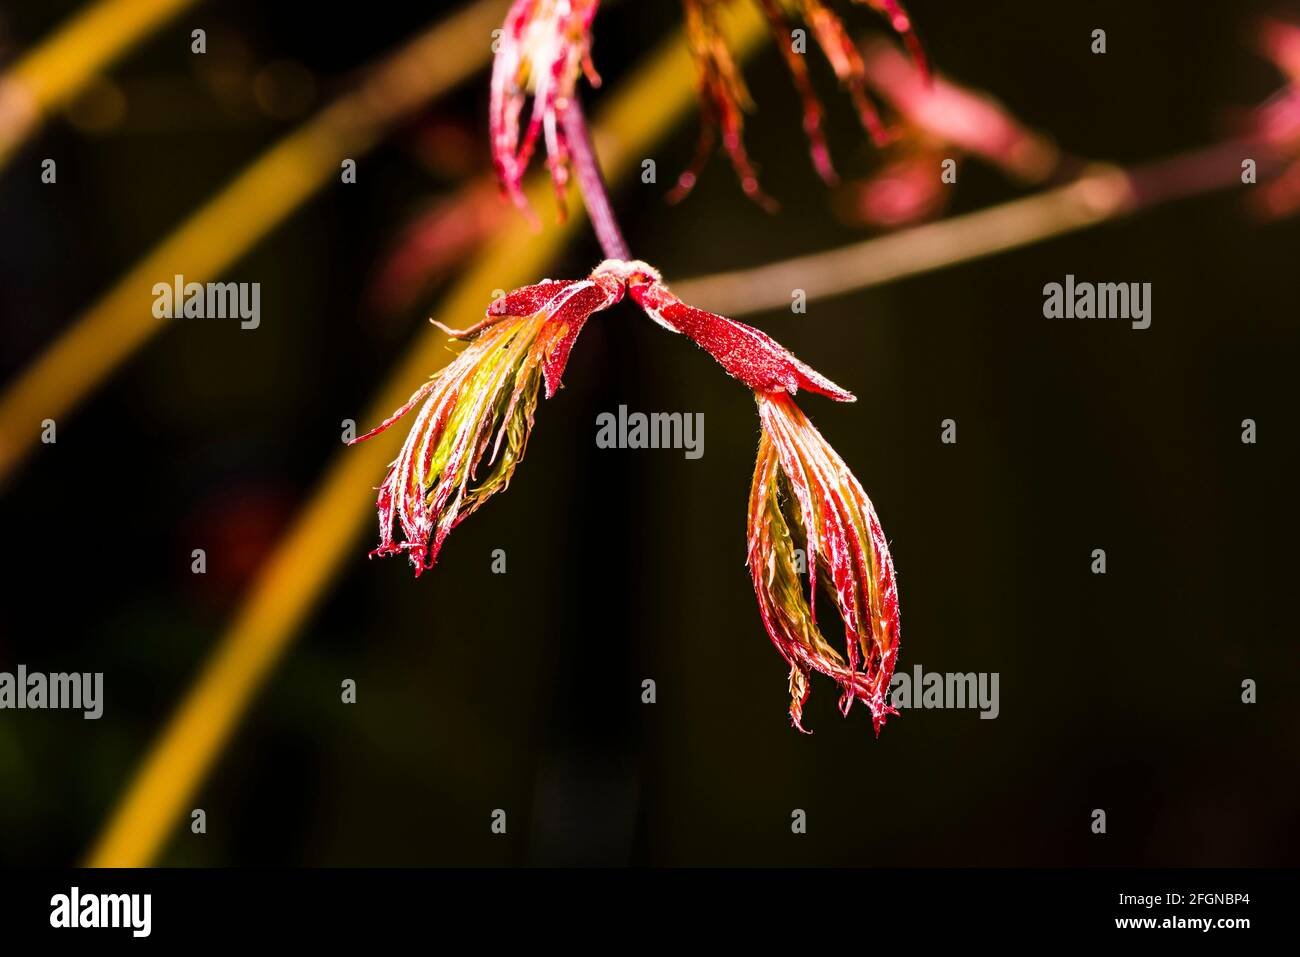 Close-up of an opening leaf on an Acer palmatum 'Bloodgood' tree in a north London spring garden, London, UK Stock Photo